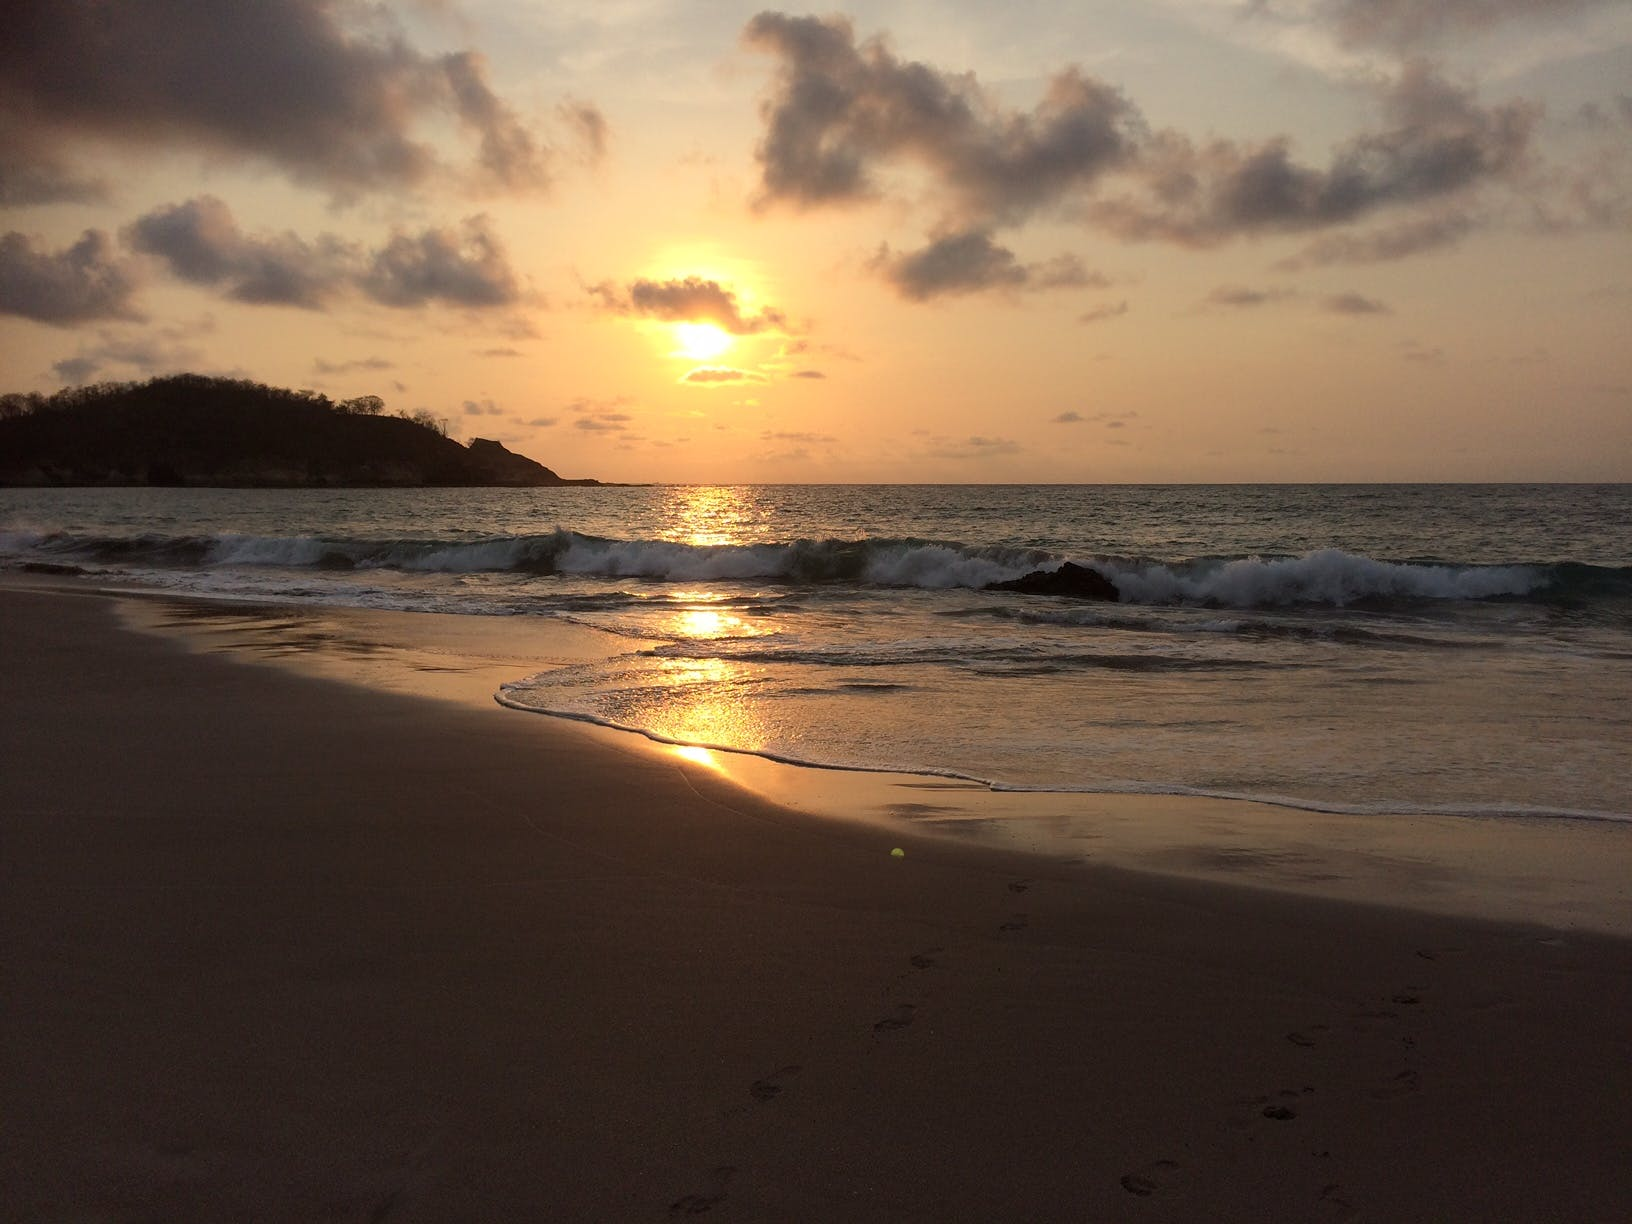 Playa Minas sunset